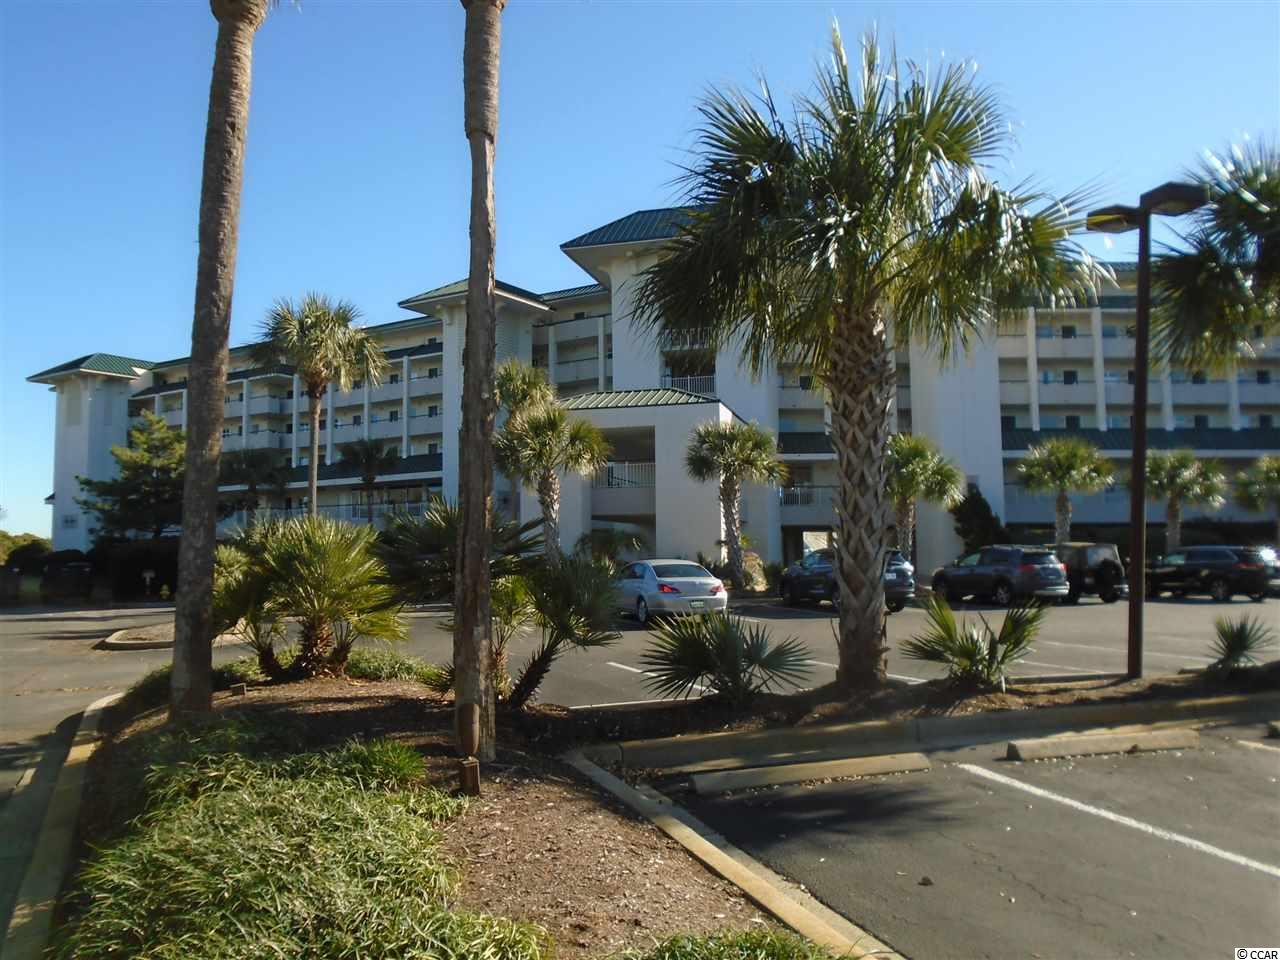 Stunning views of the Atlantic Ocean from balcony of this condo.  Many upgrades, granite kitchen countertops, new flooring, indirect lighting in kitchen and bath, king size bed.  Established rental program.  Enjoy indoor pool, hot tub, large outdoor pool, lazy river and easy beach access.  Don't miss seeing this one!